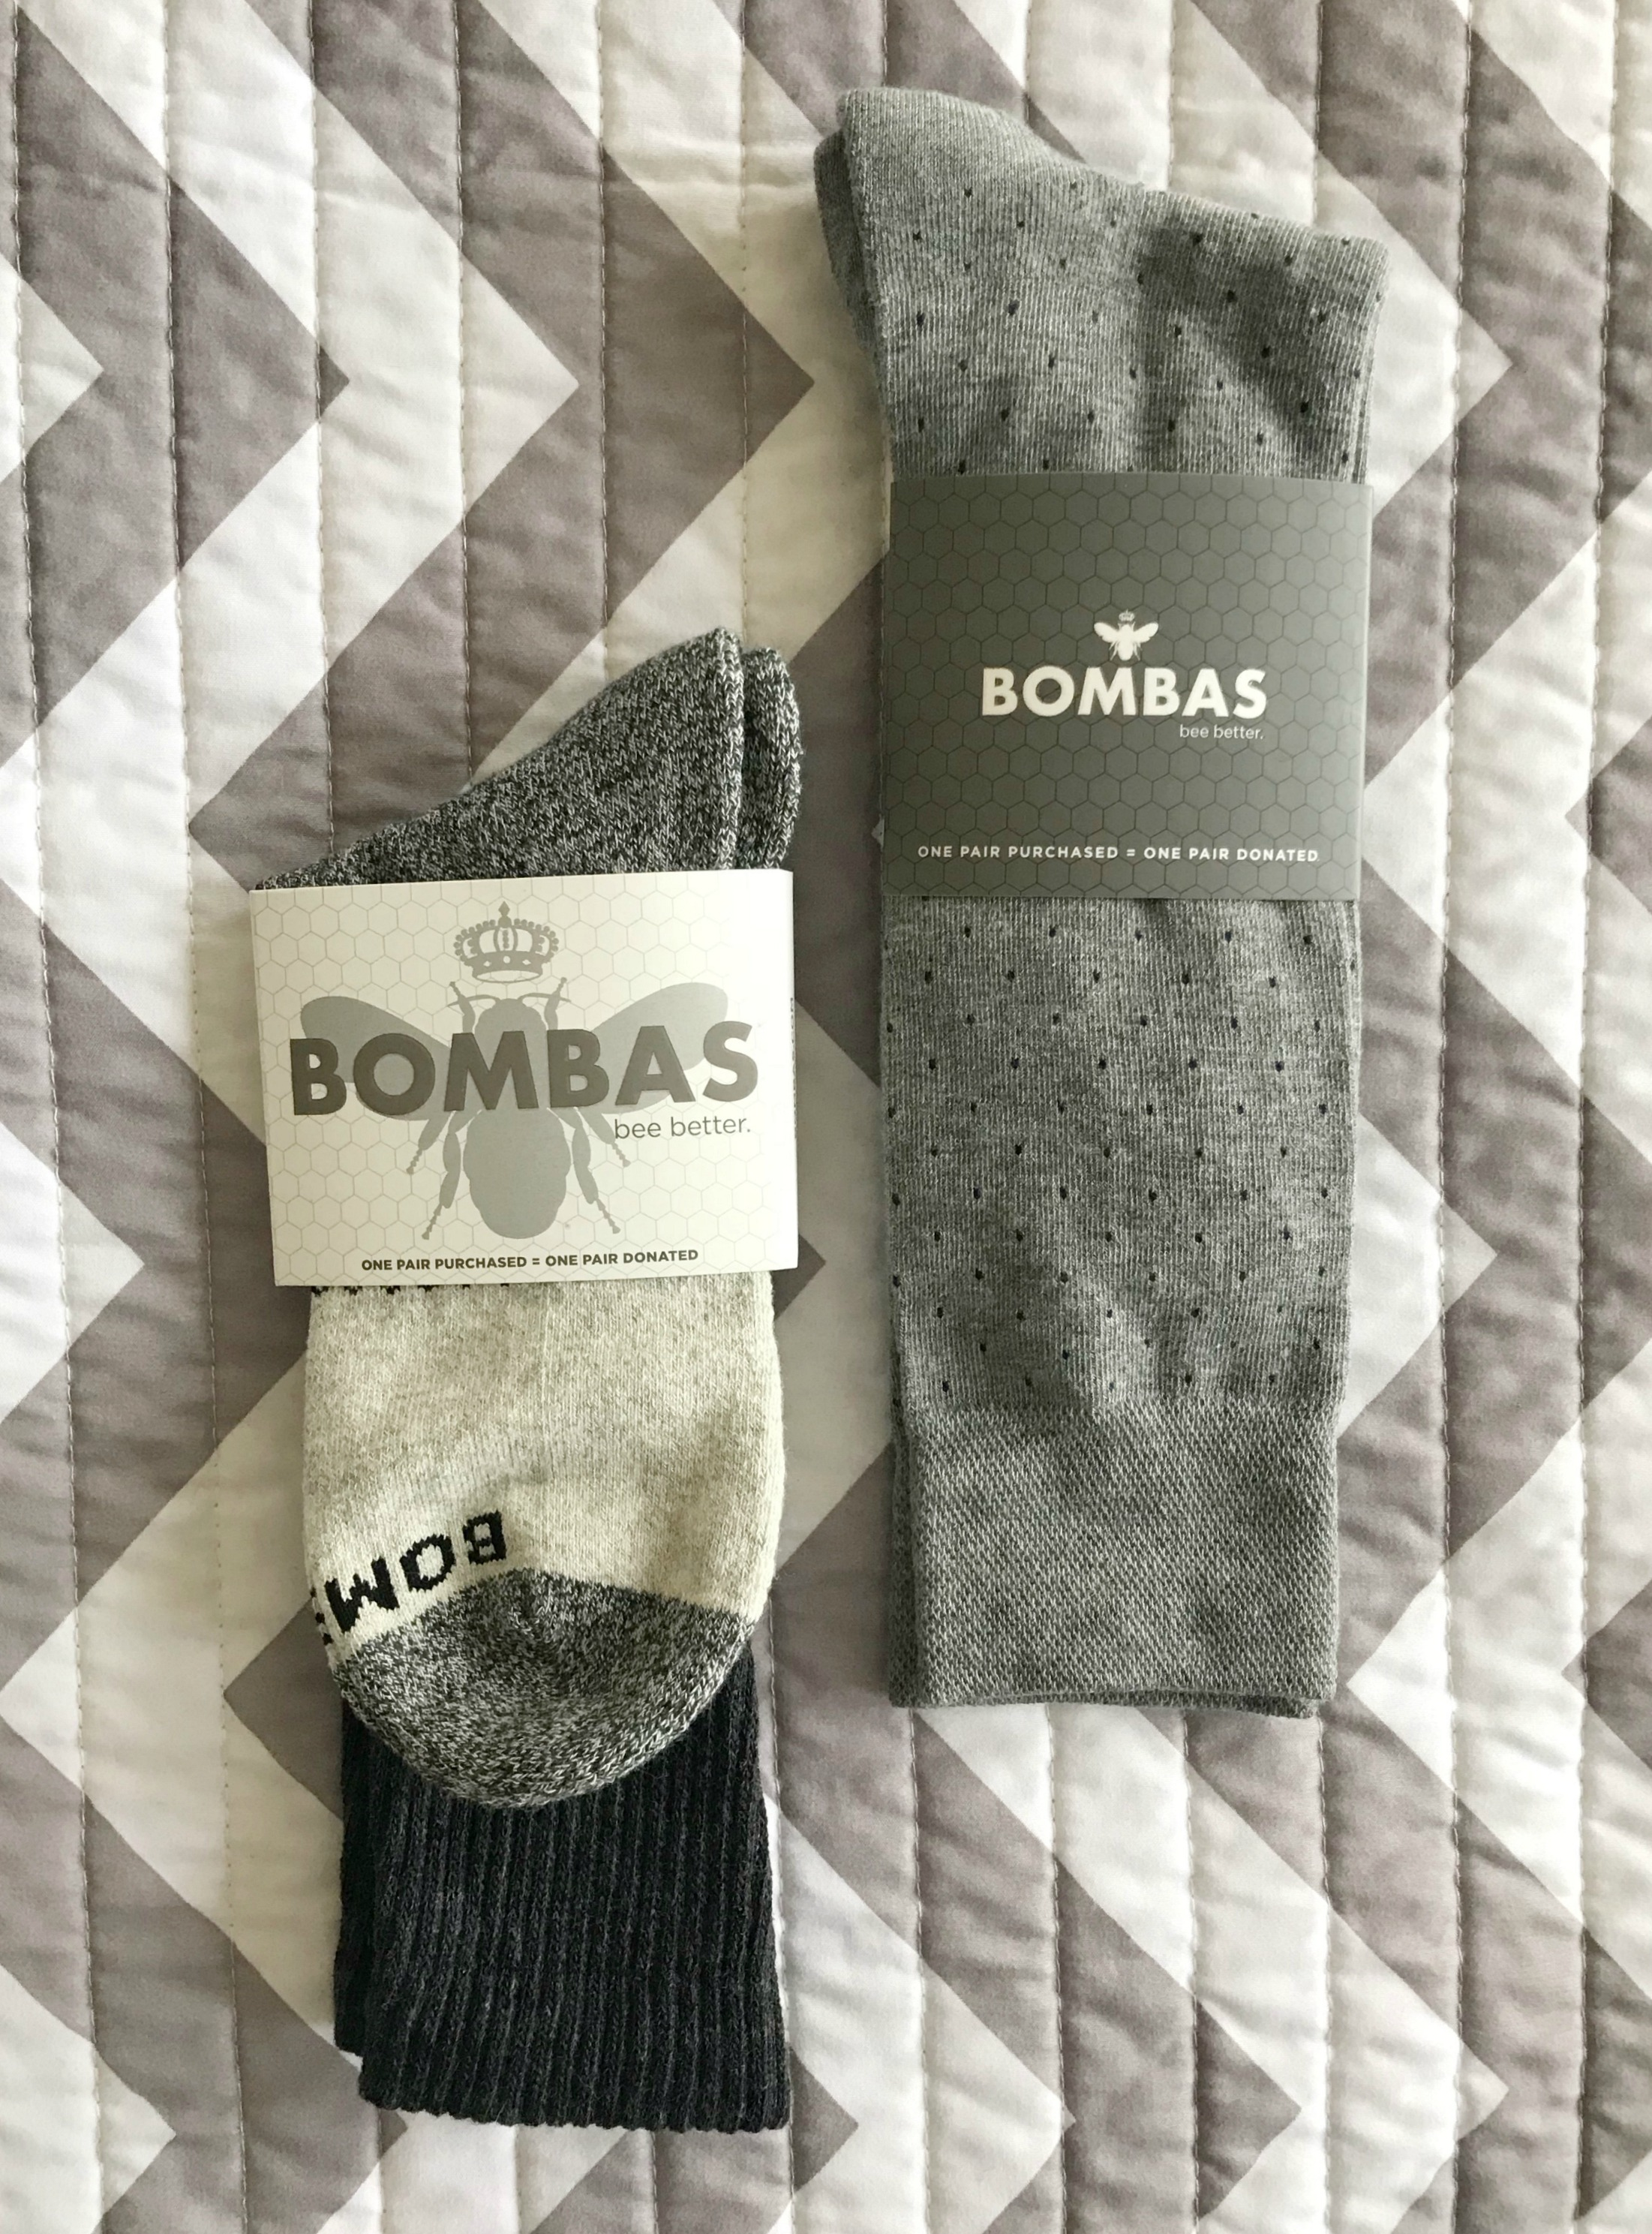 Bombas mens socks